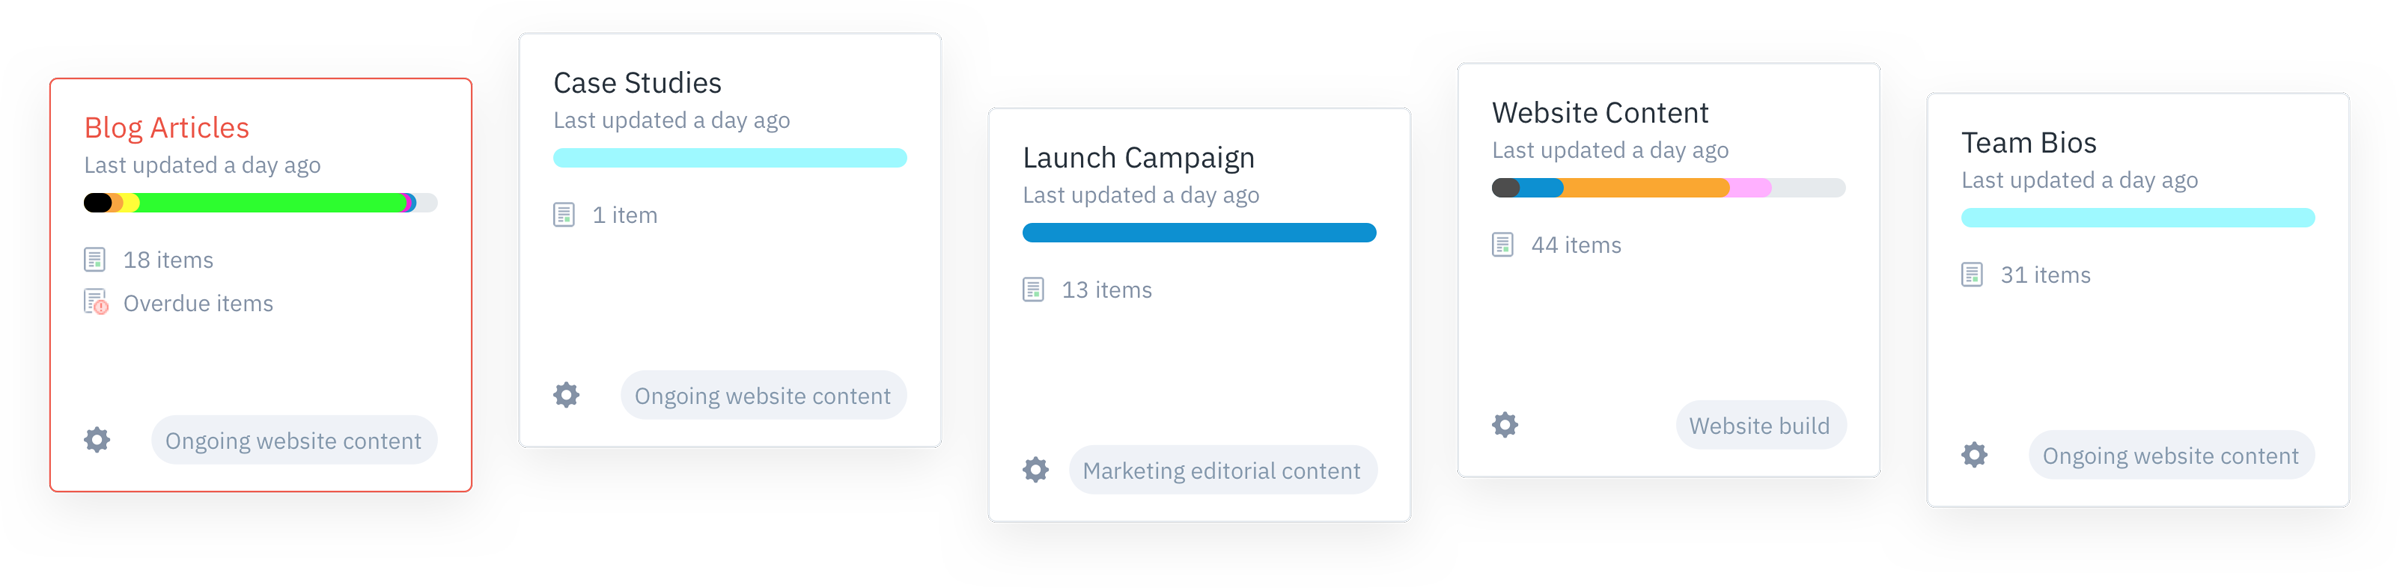 GatherContent Project Card UI